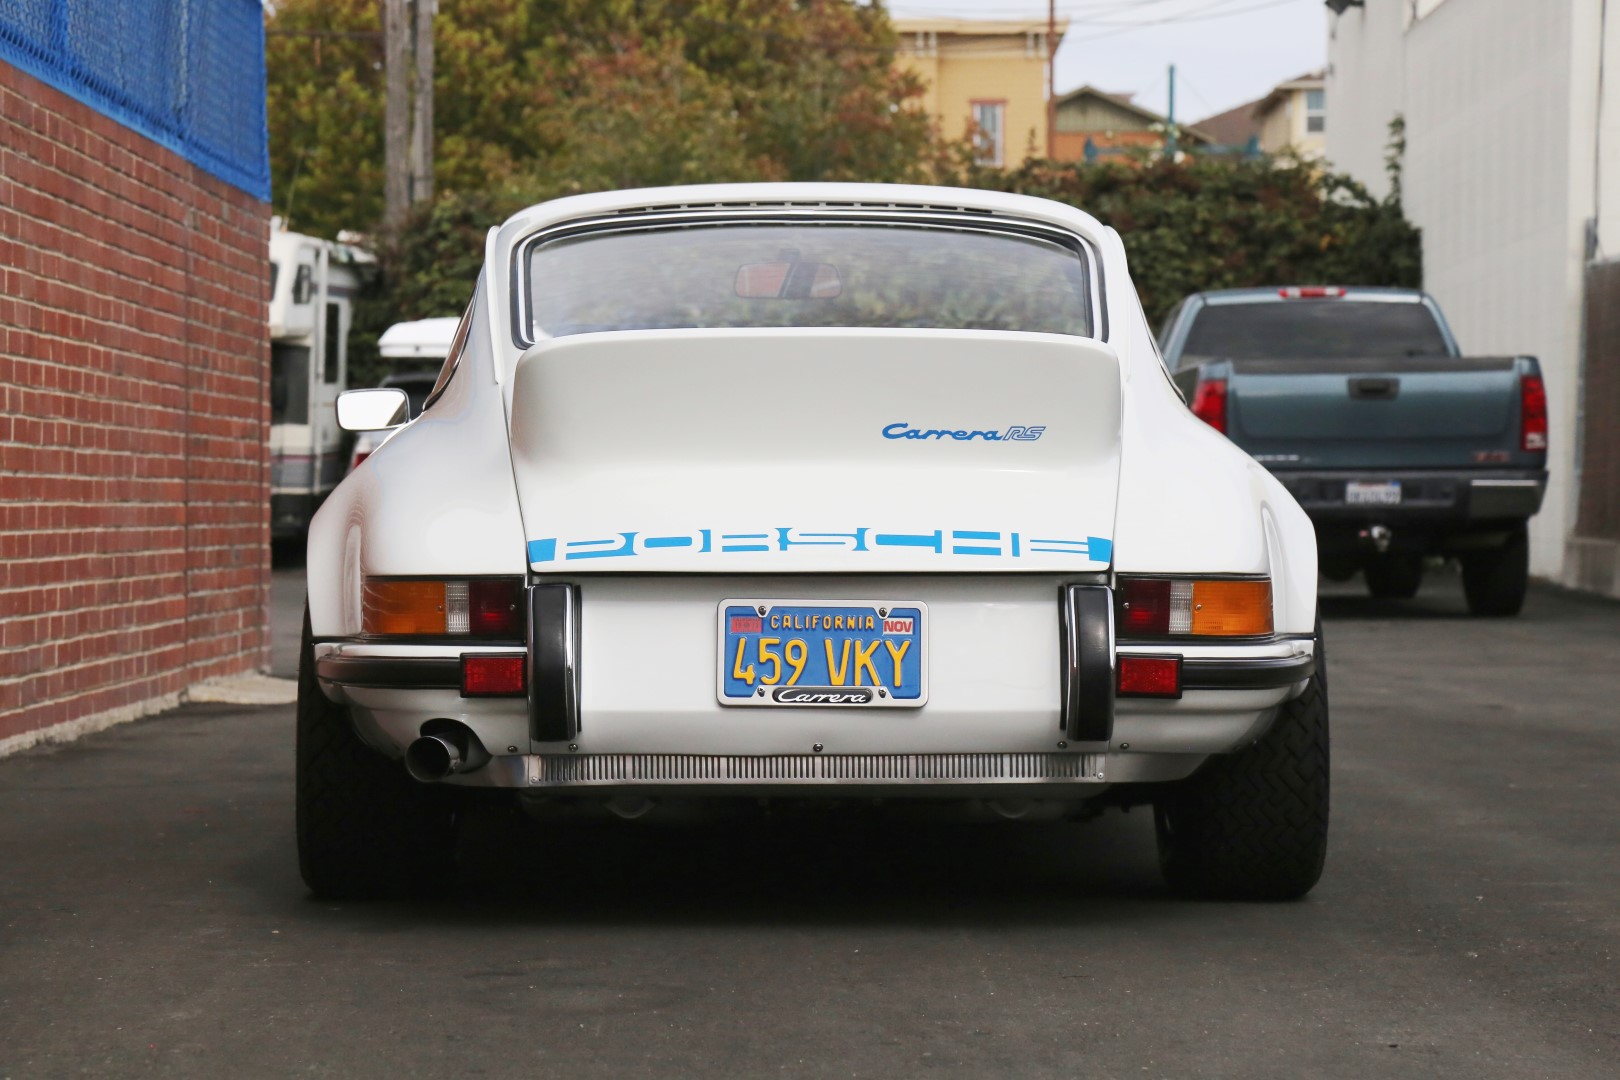 Porsche-911-Carrera-RS-2.7-1973-for-sale-13